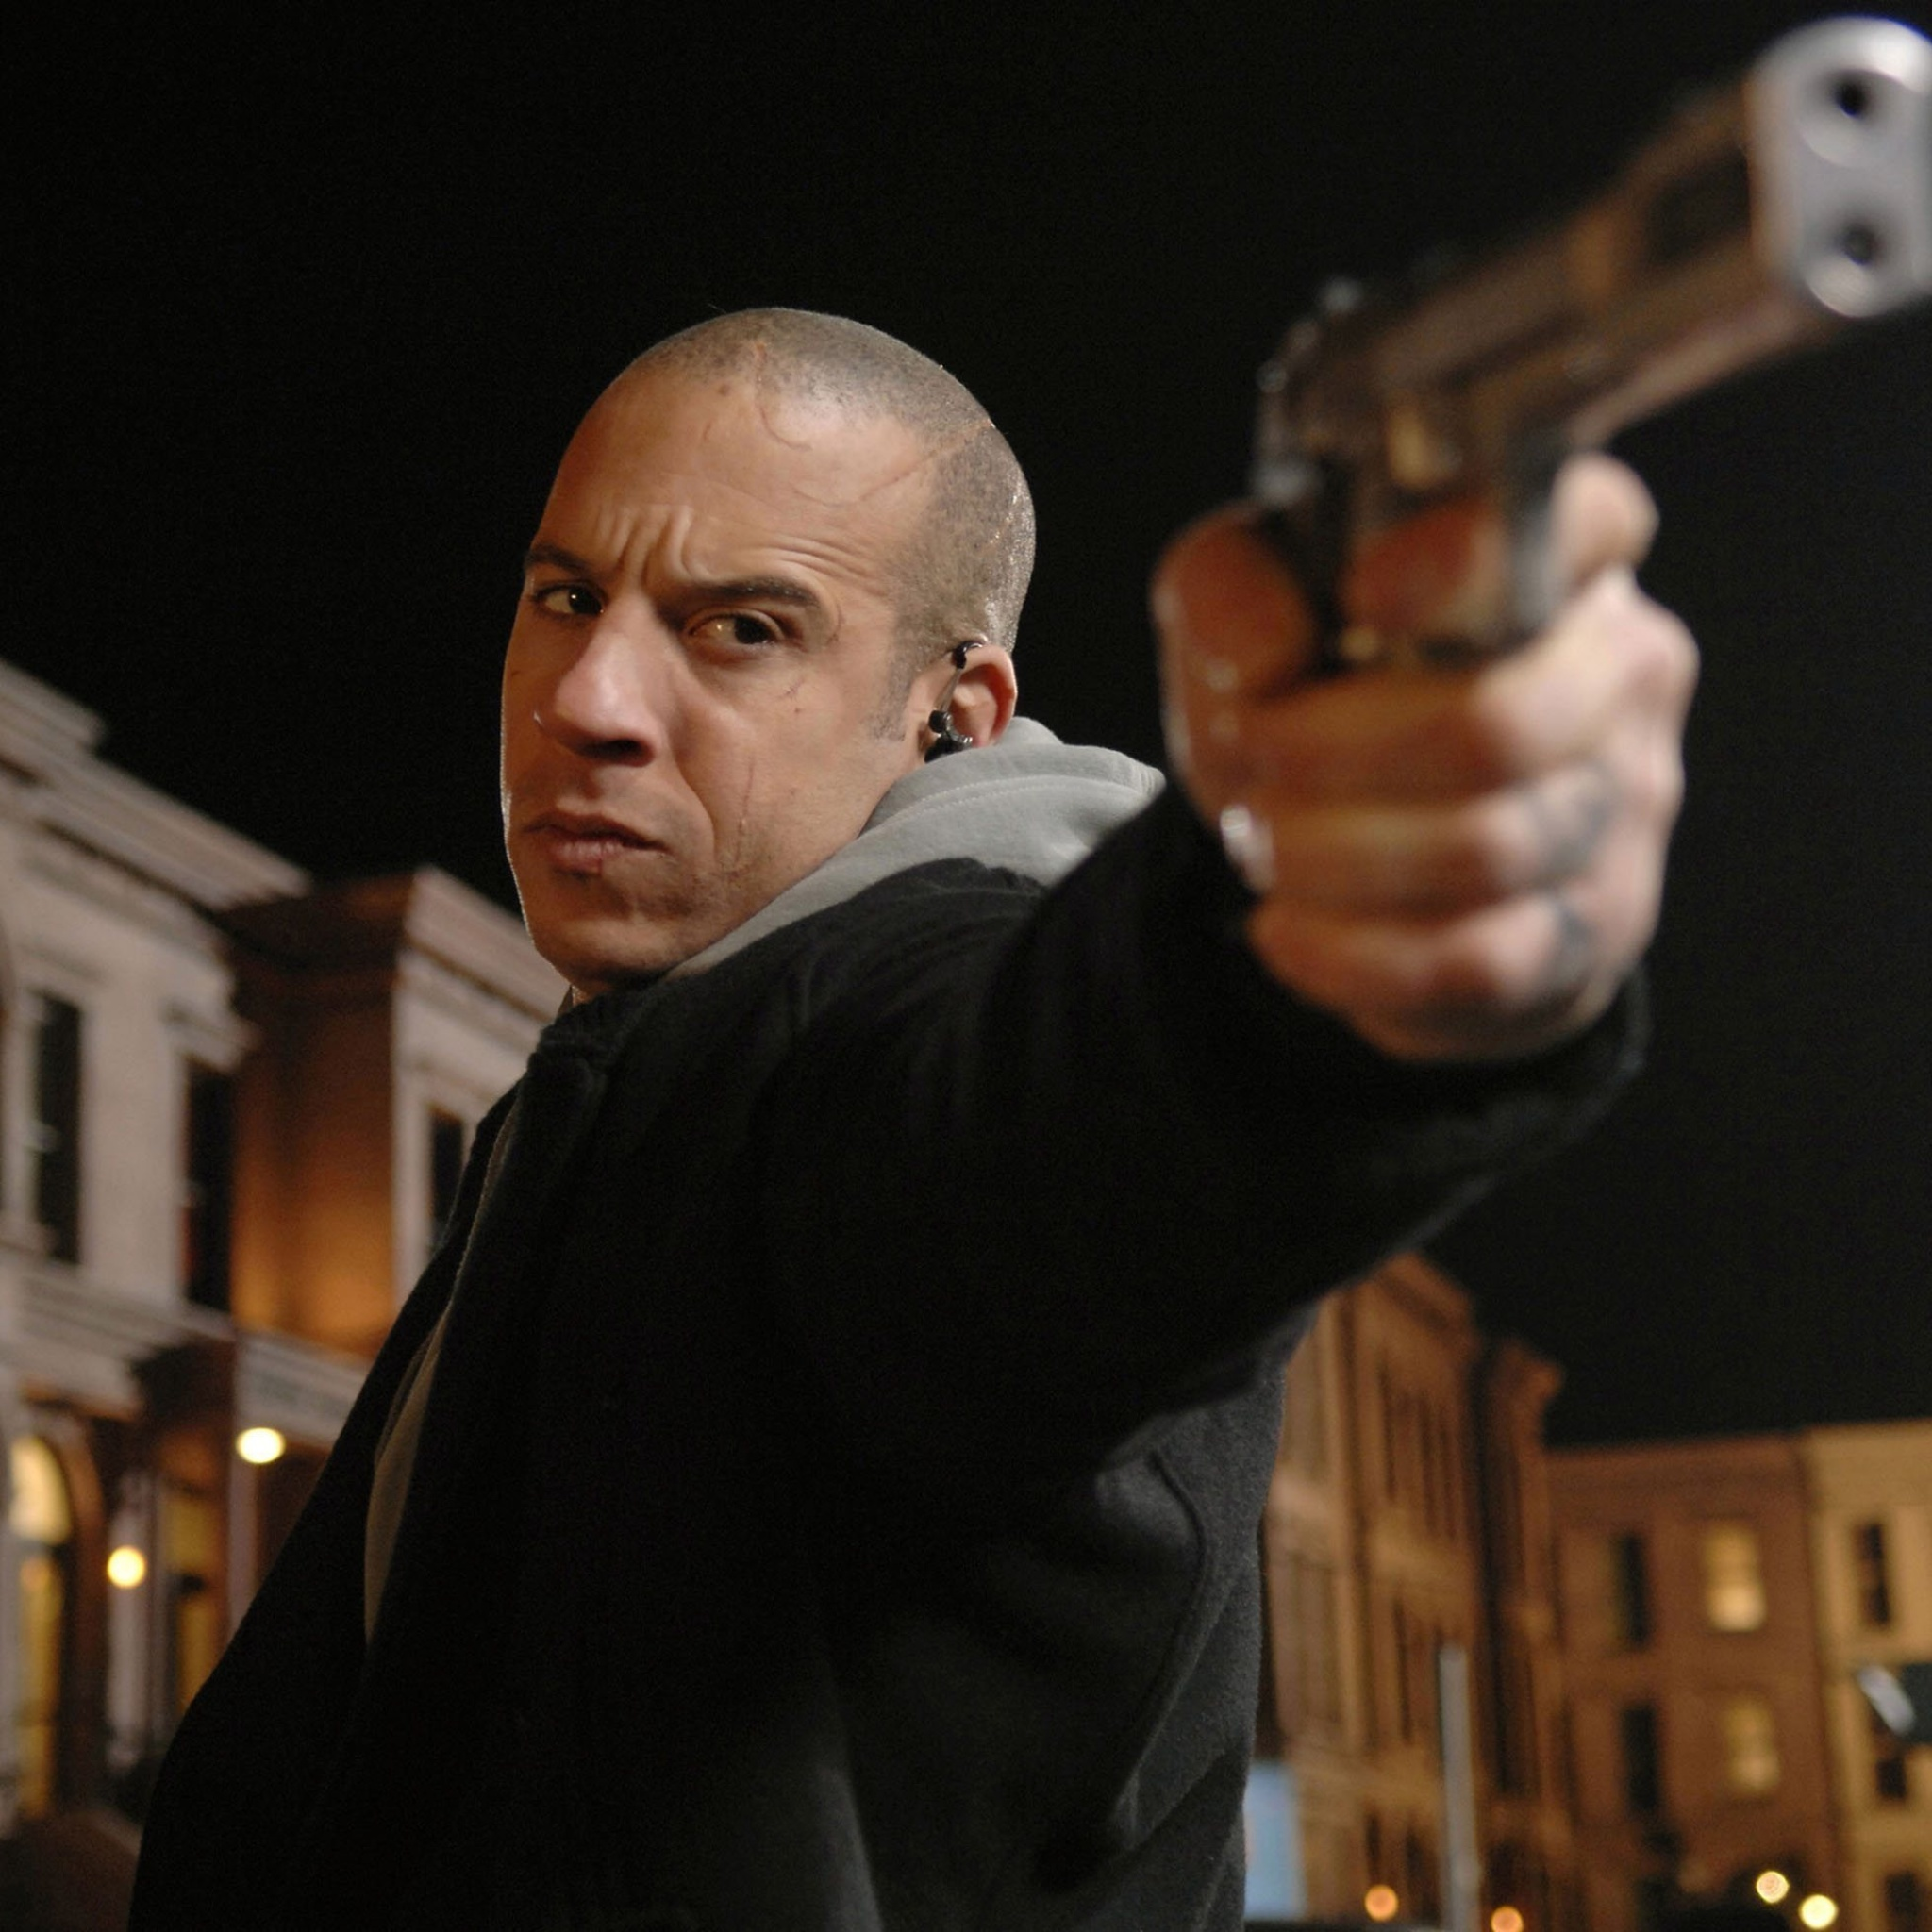 Vin Diesel in Fast & Furious screenshot #1 2048x2048